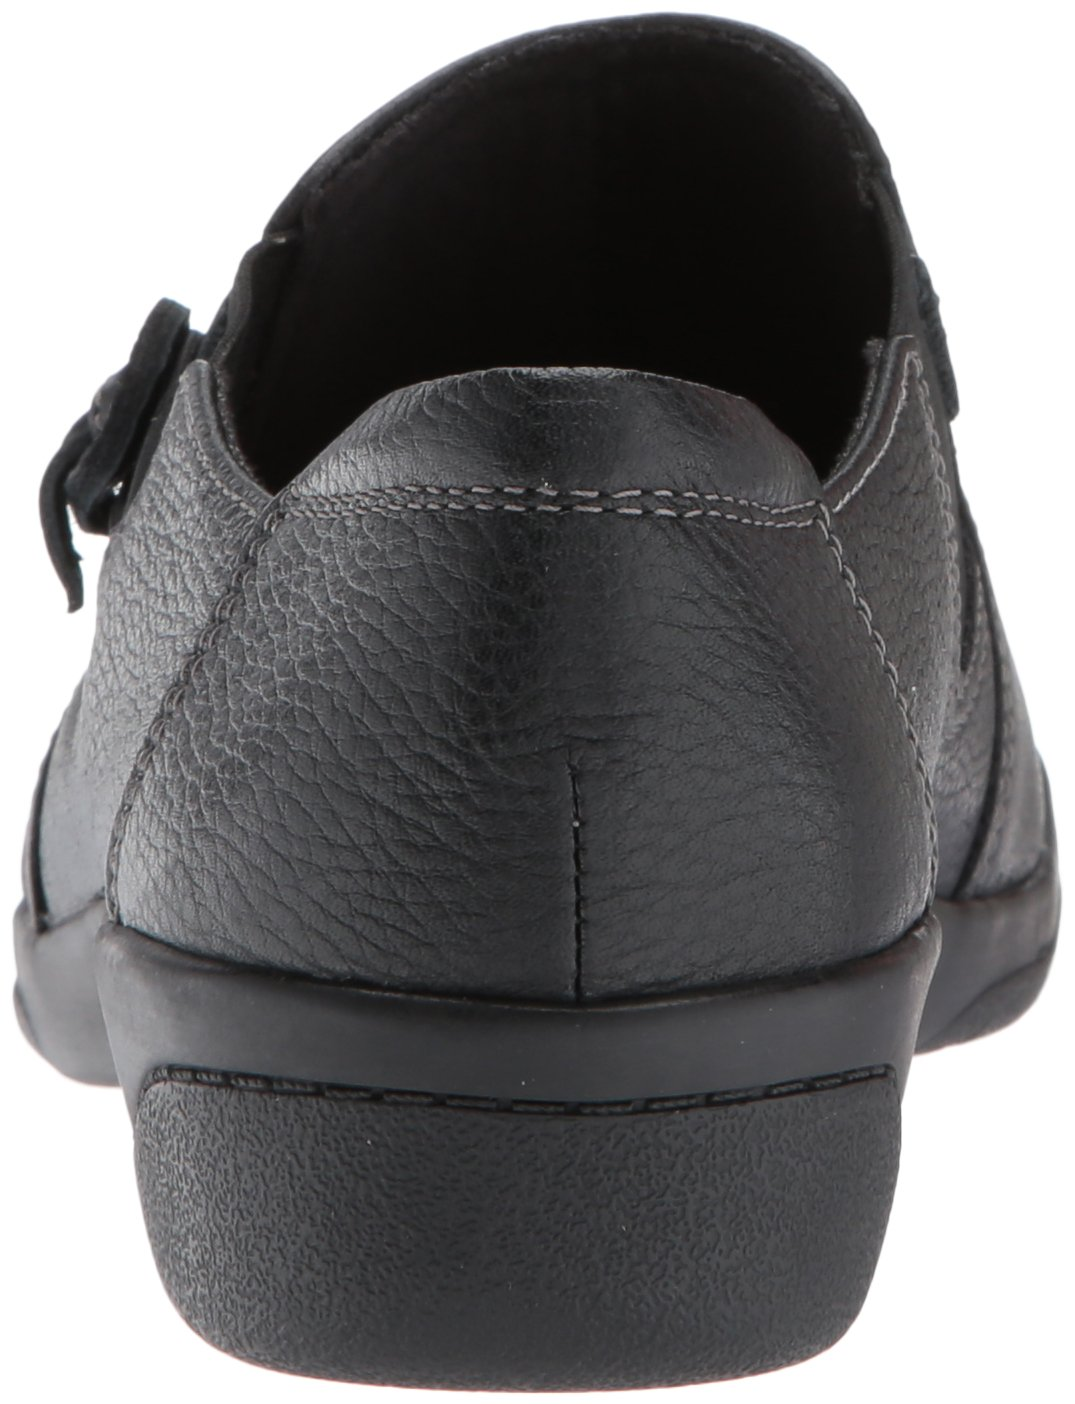 Clarks Women's Cheyn Madi Slip-On Loafer, Black Tumbled Leather, 9.5 W US by CLARKS (Image #2)